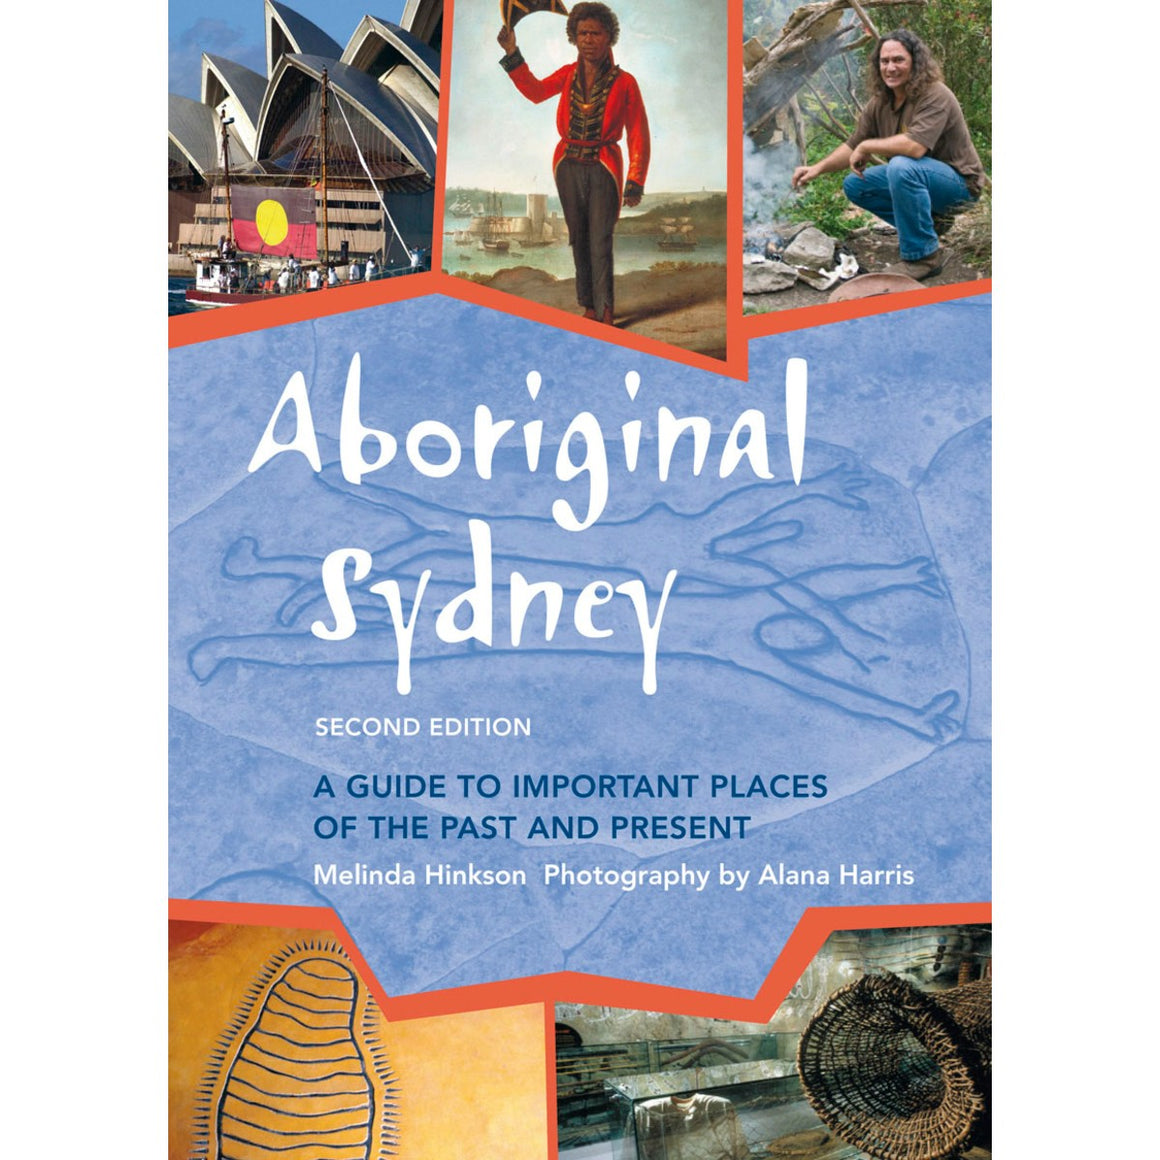 A book cover featuring a collage of images relating to the Aboriginal past and present of Sydney including: traditional artefacts, art. a colonial illustration; a boat flying the aboriginal flag; rock carings and an aboriginal man by a campfire.